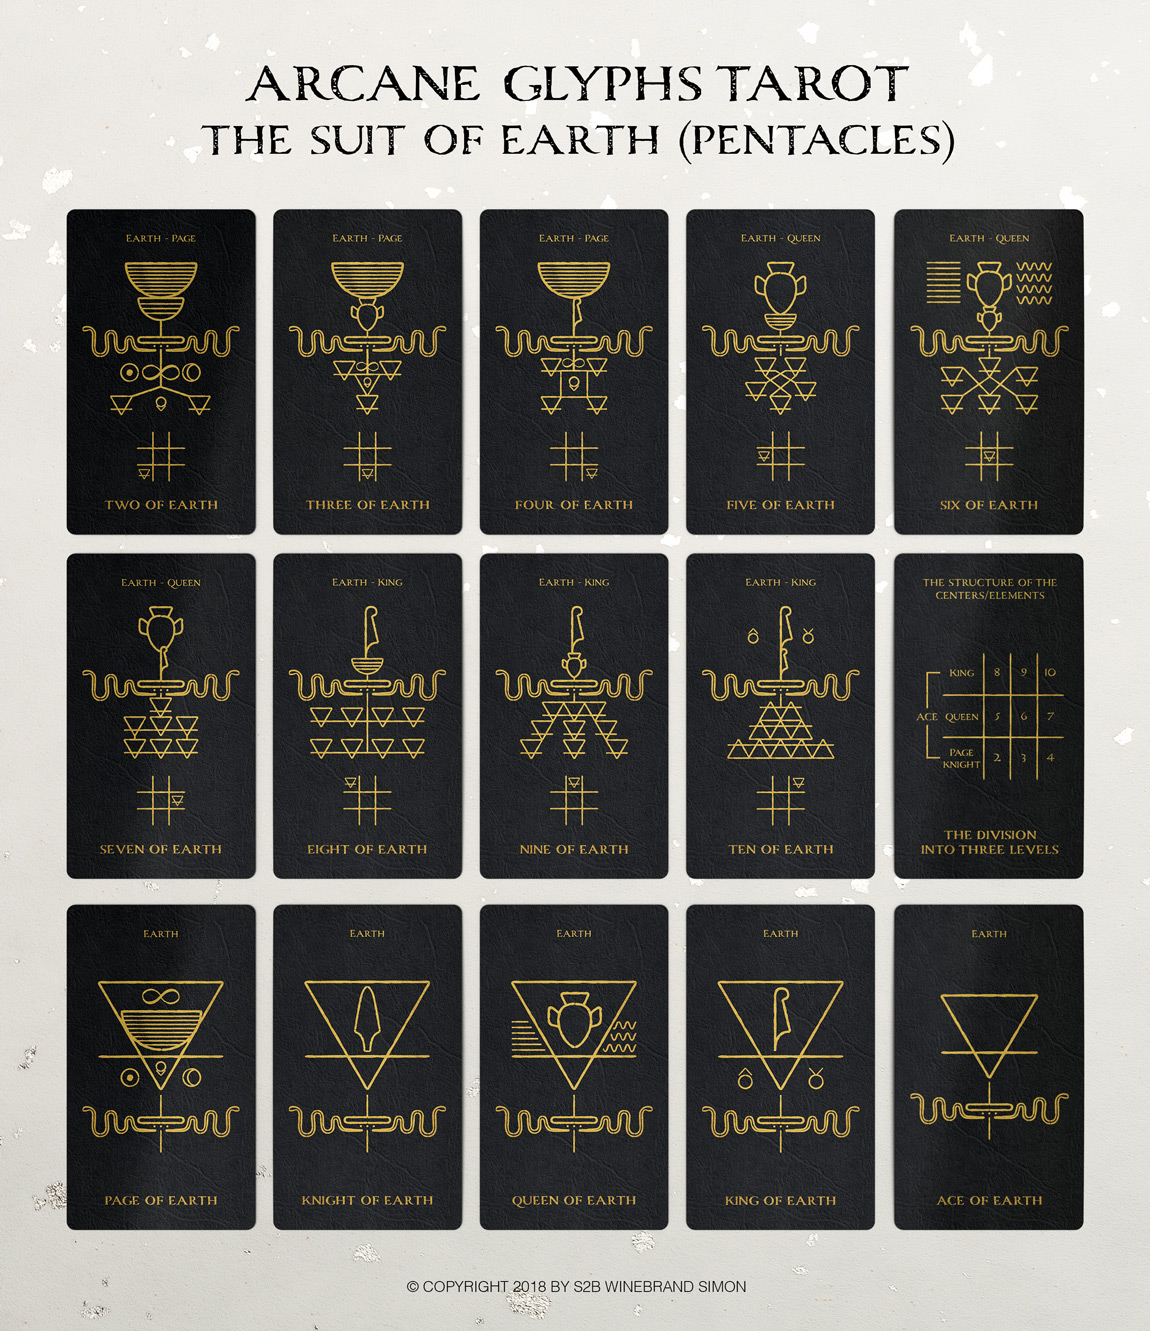 The-Suit-of-Earth-Pentacles